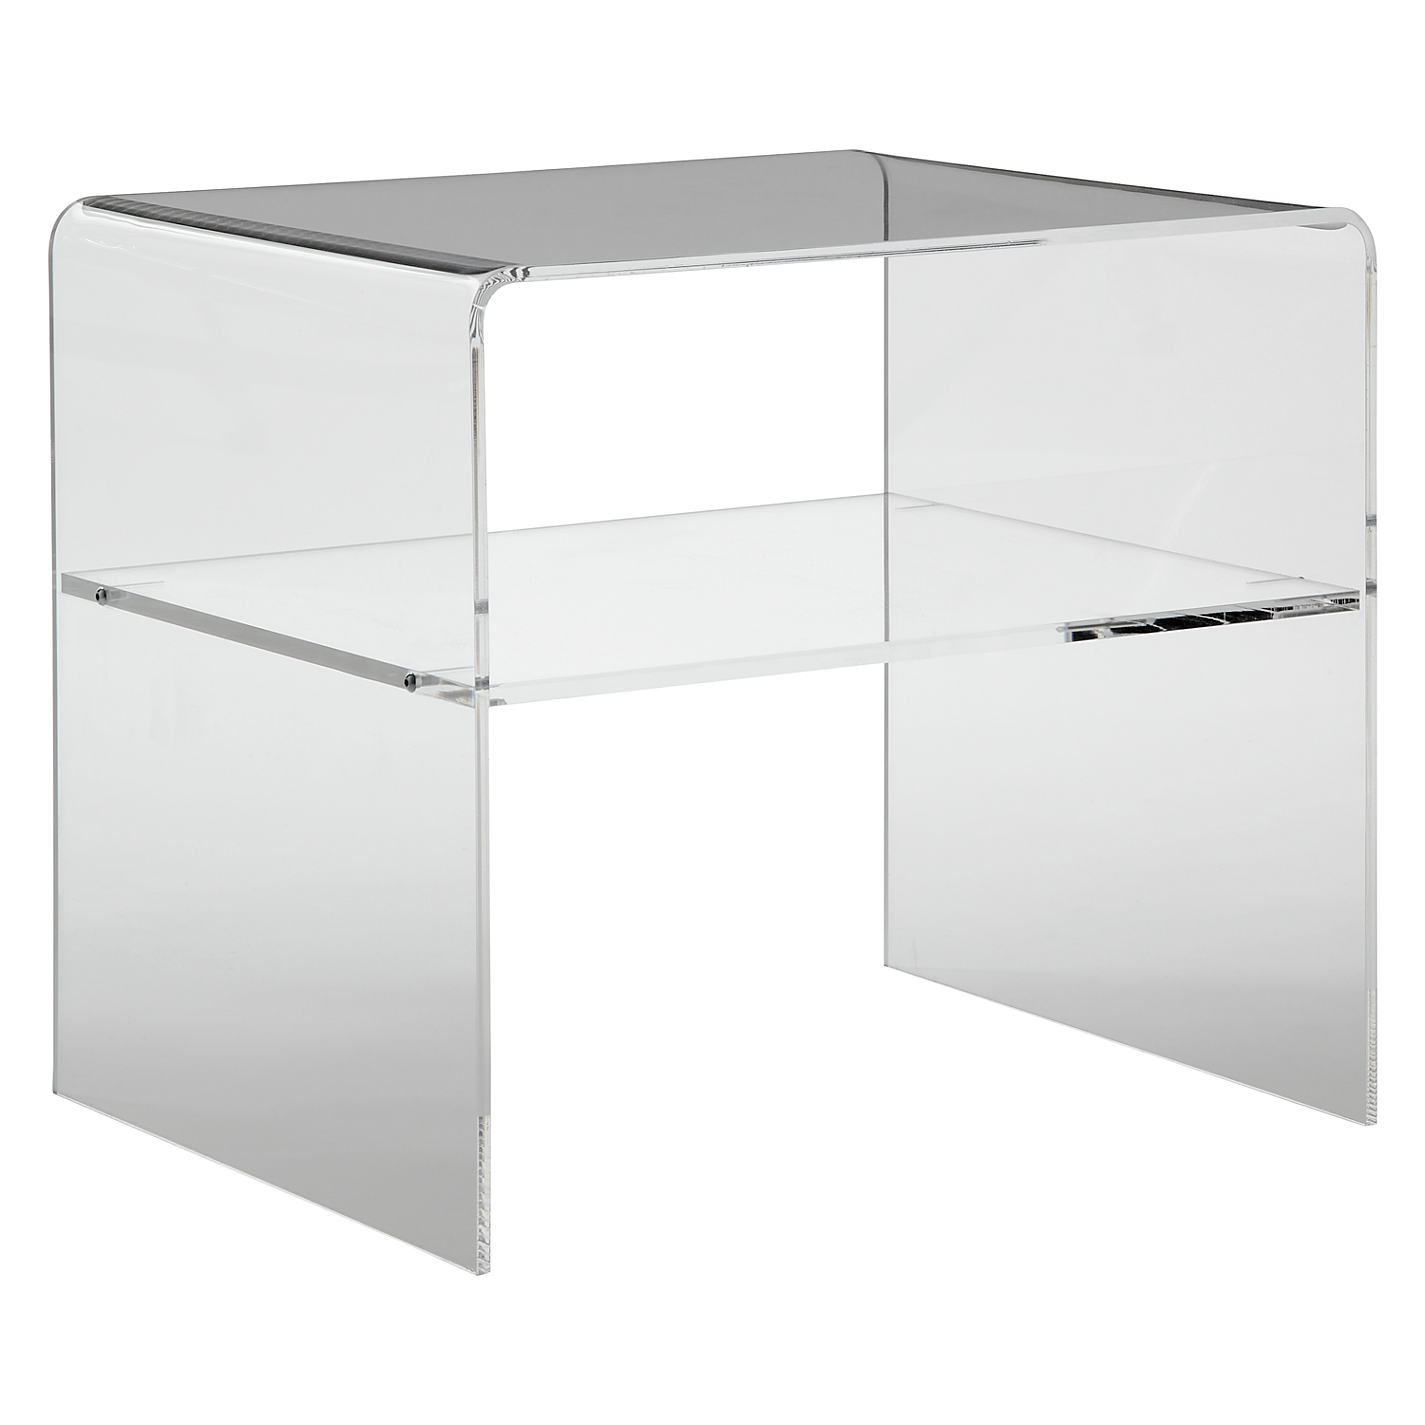 Ice Side Buy John Lewis Ice Side Table